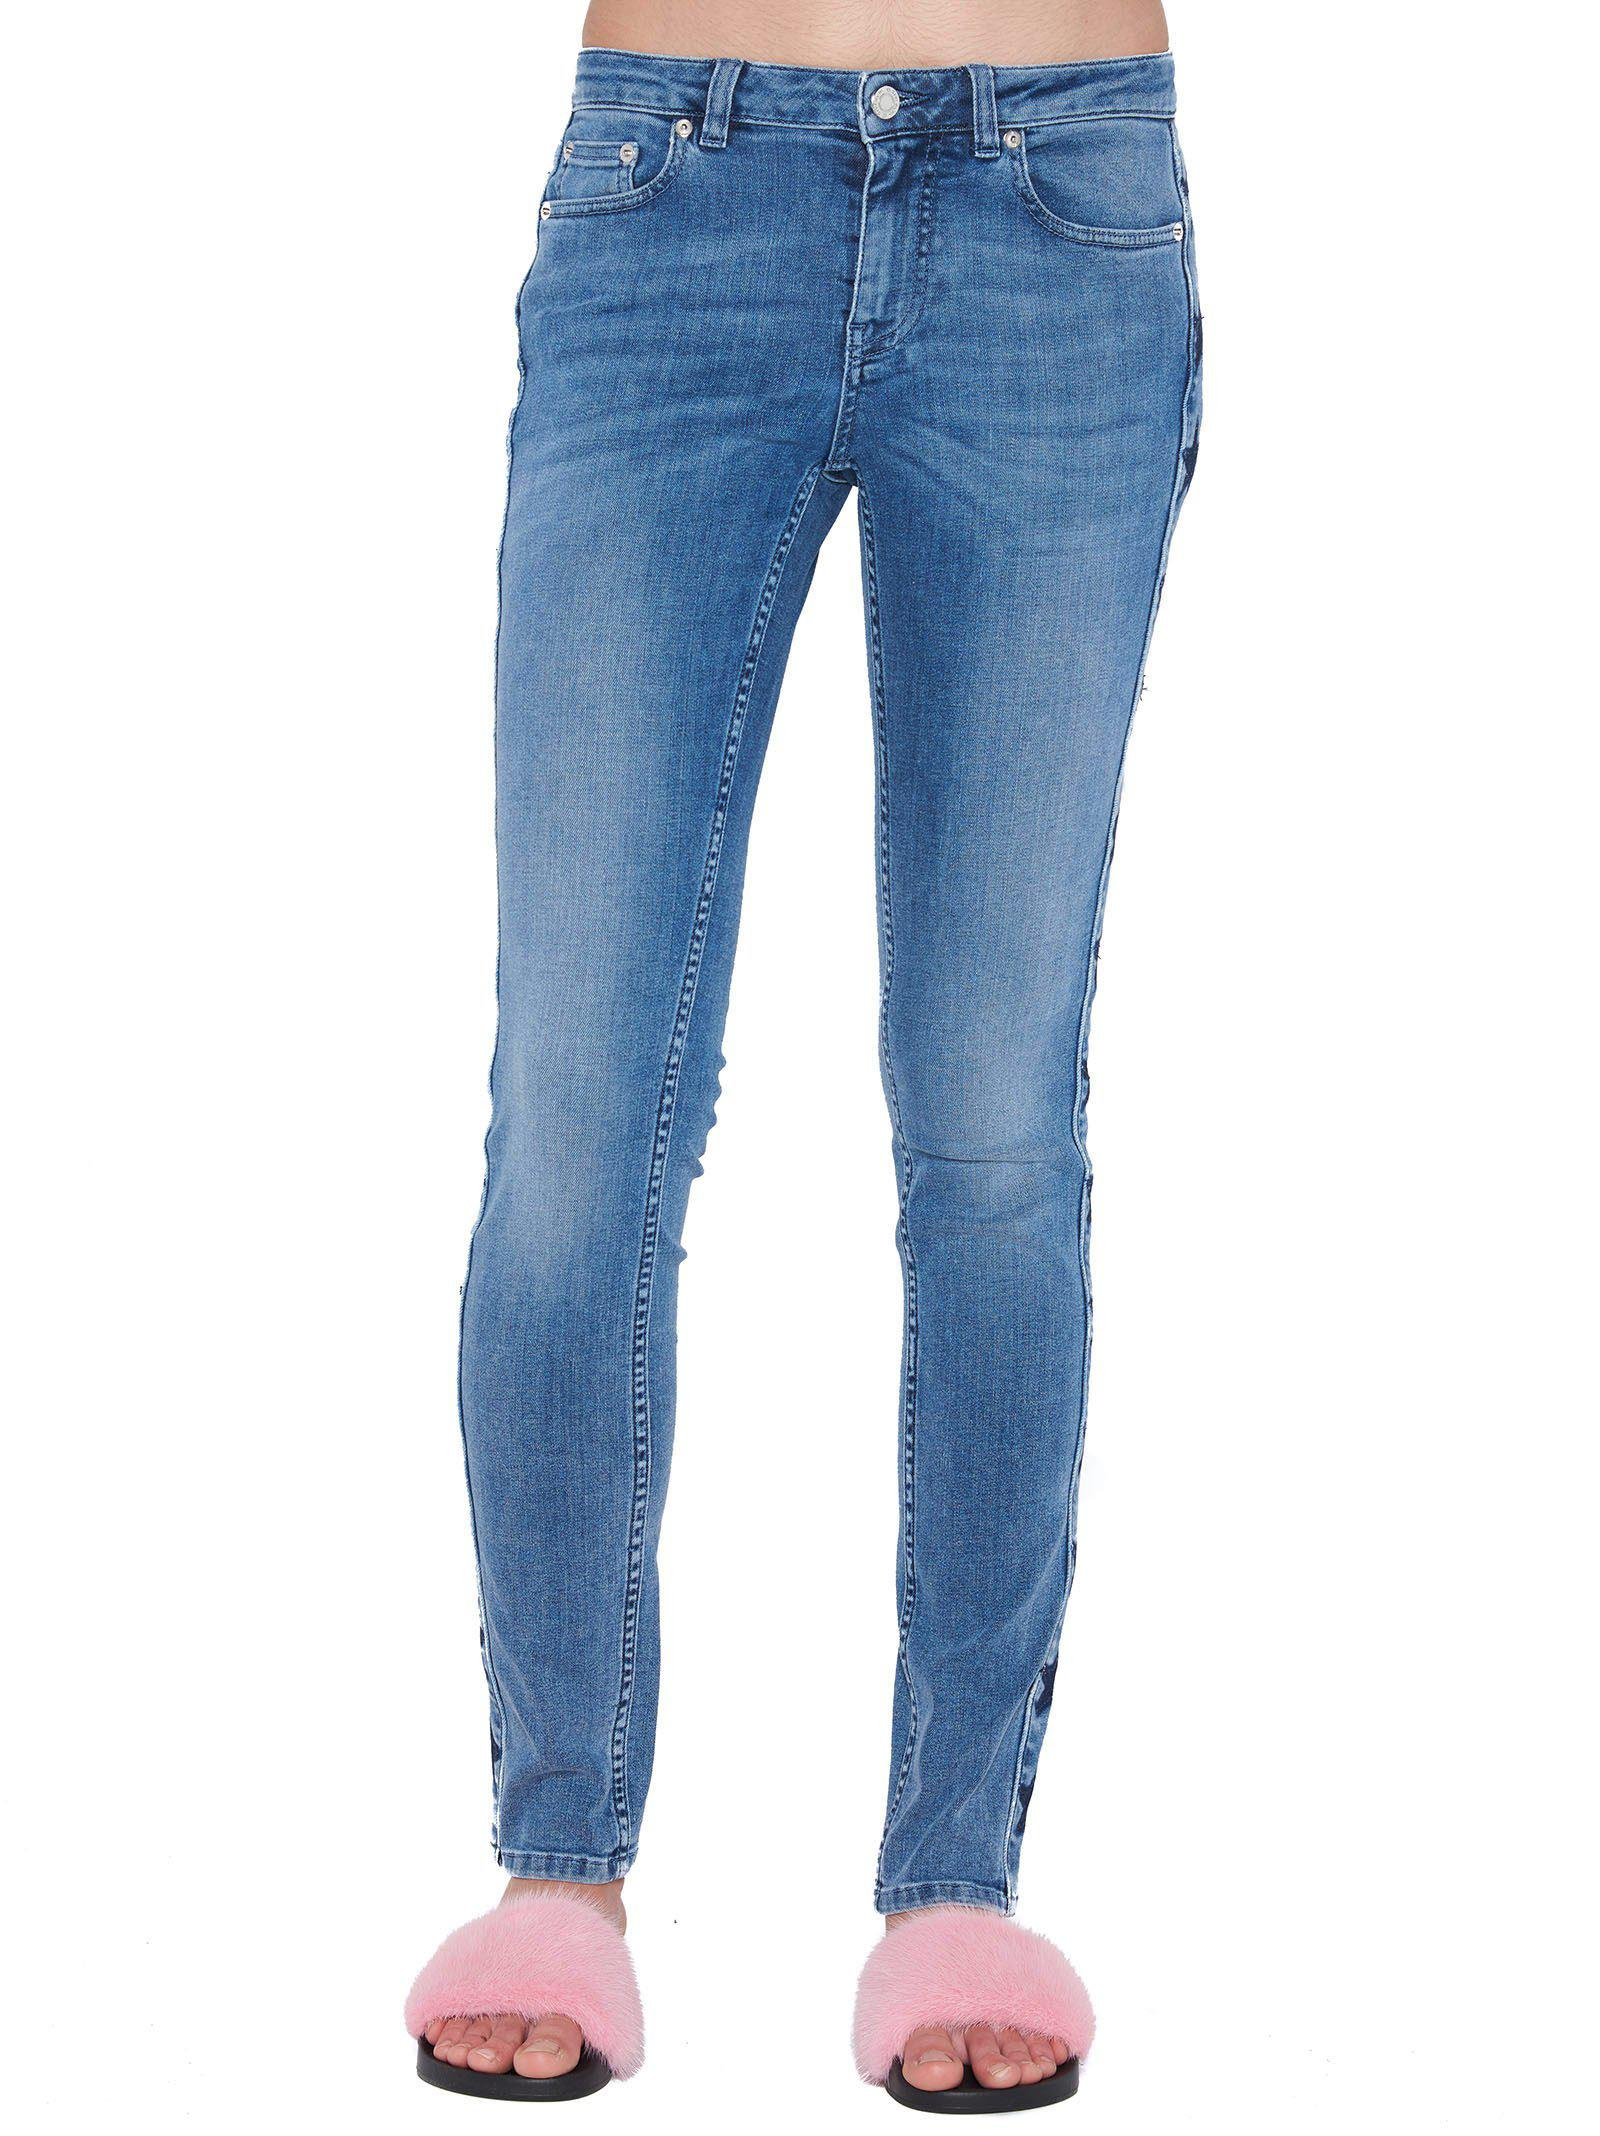 Skinny jeans with star panels Givenchy uhcH6lPIe5